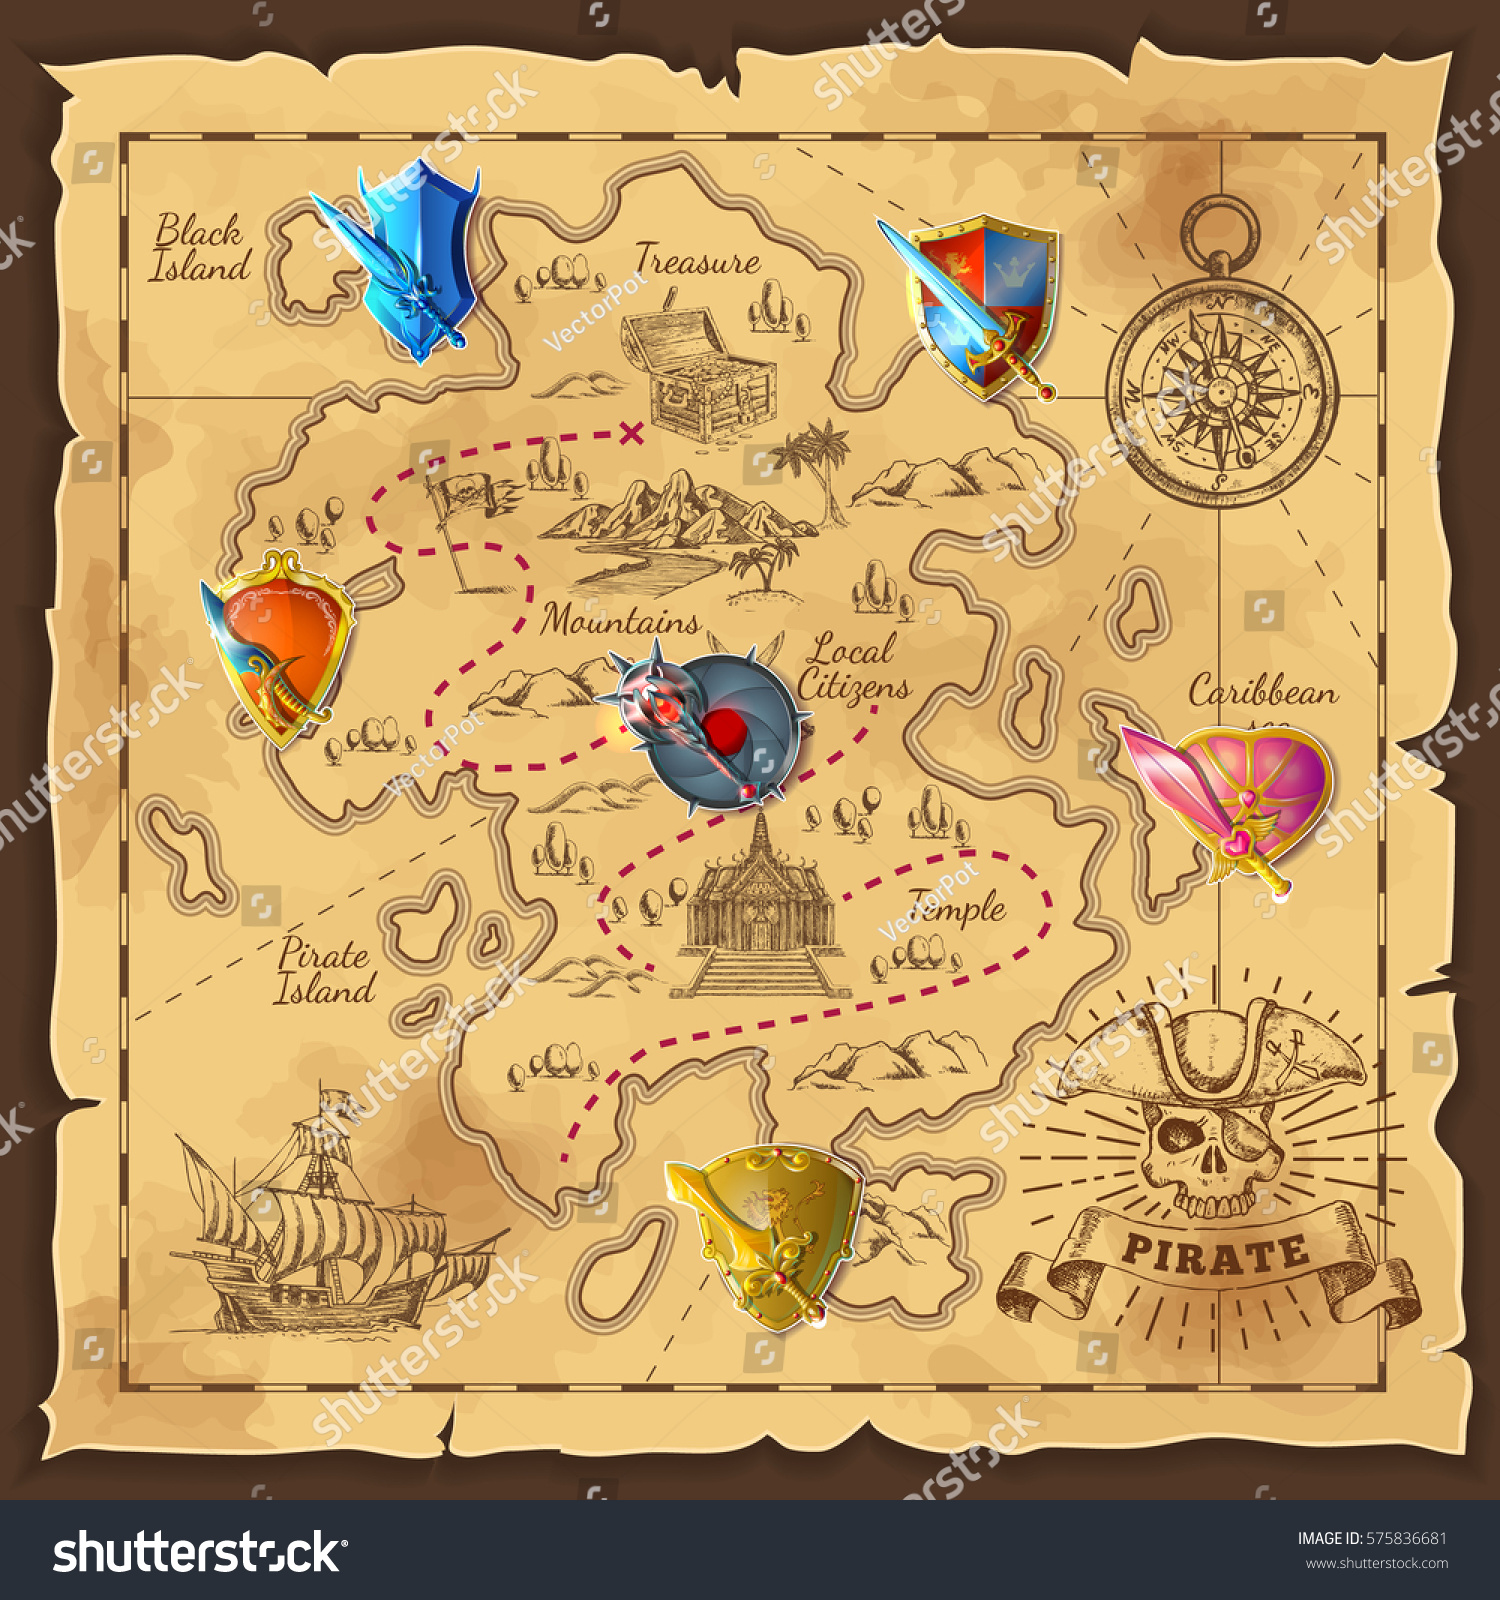 Cartoon Island Map Template Medieval Colorful Stock Vector ...